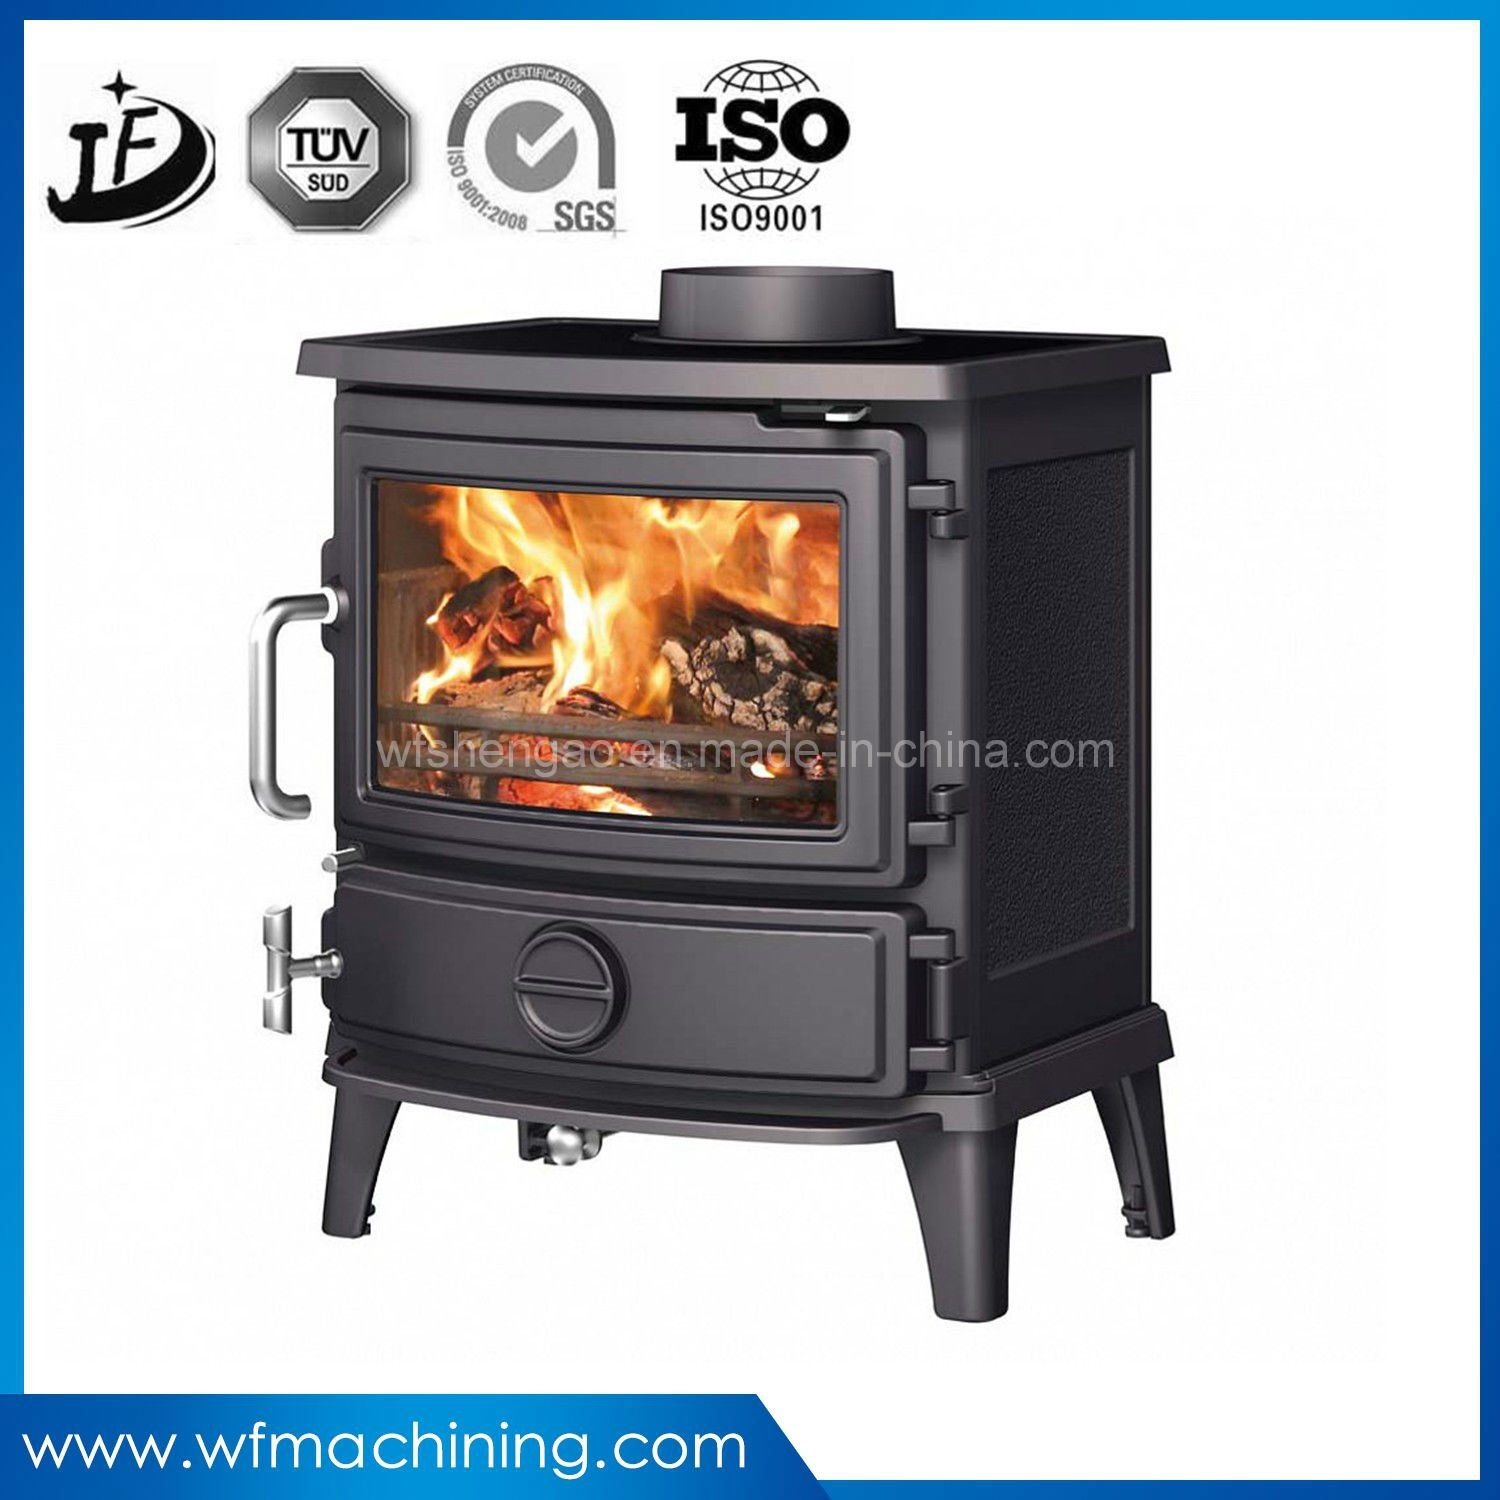 OEM New Morden Metal/Iron/Wood Burning Fireplace Stove of Electric Fireplace